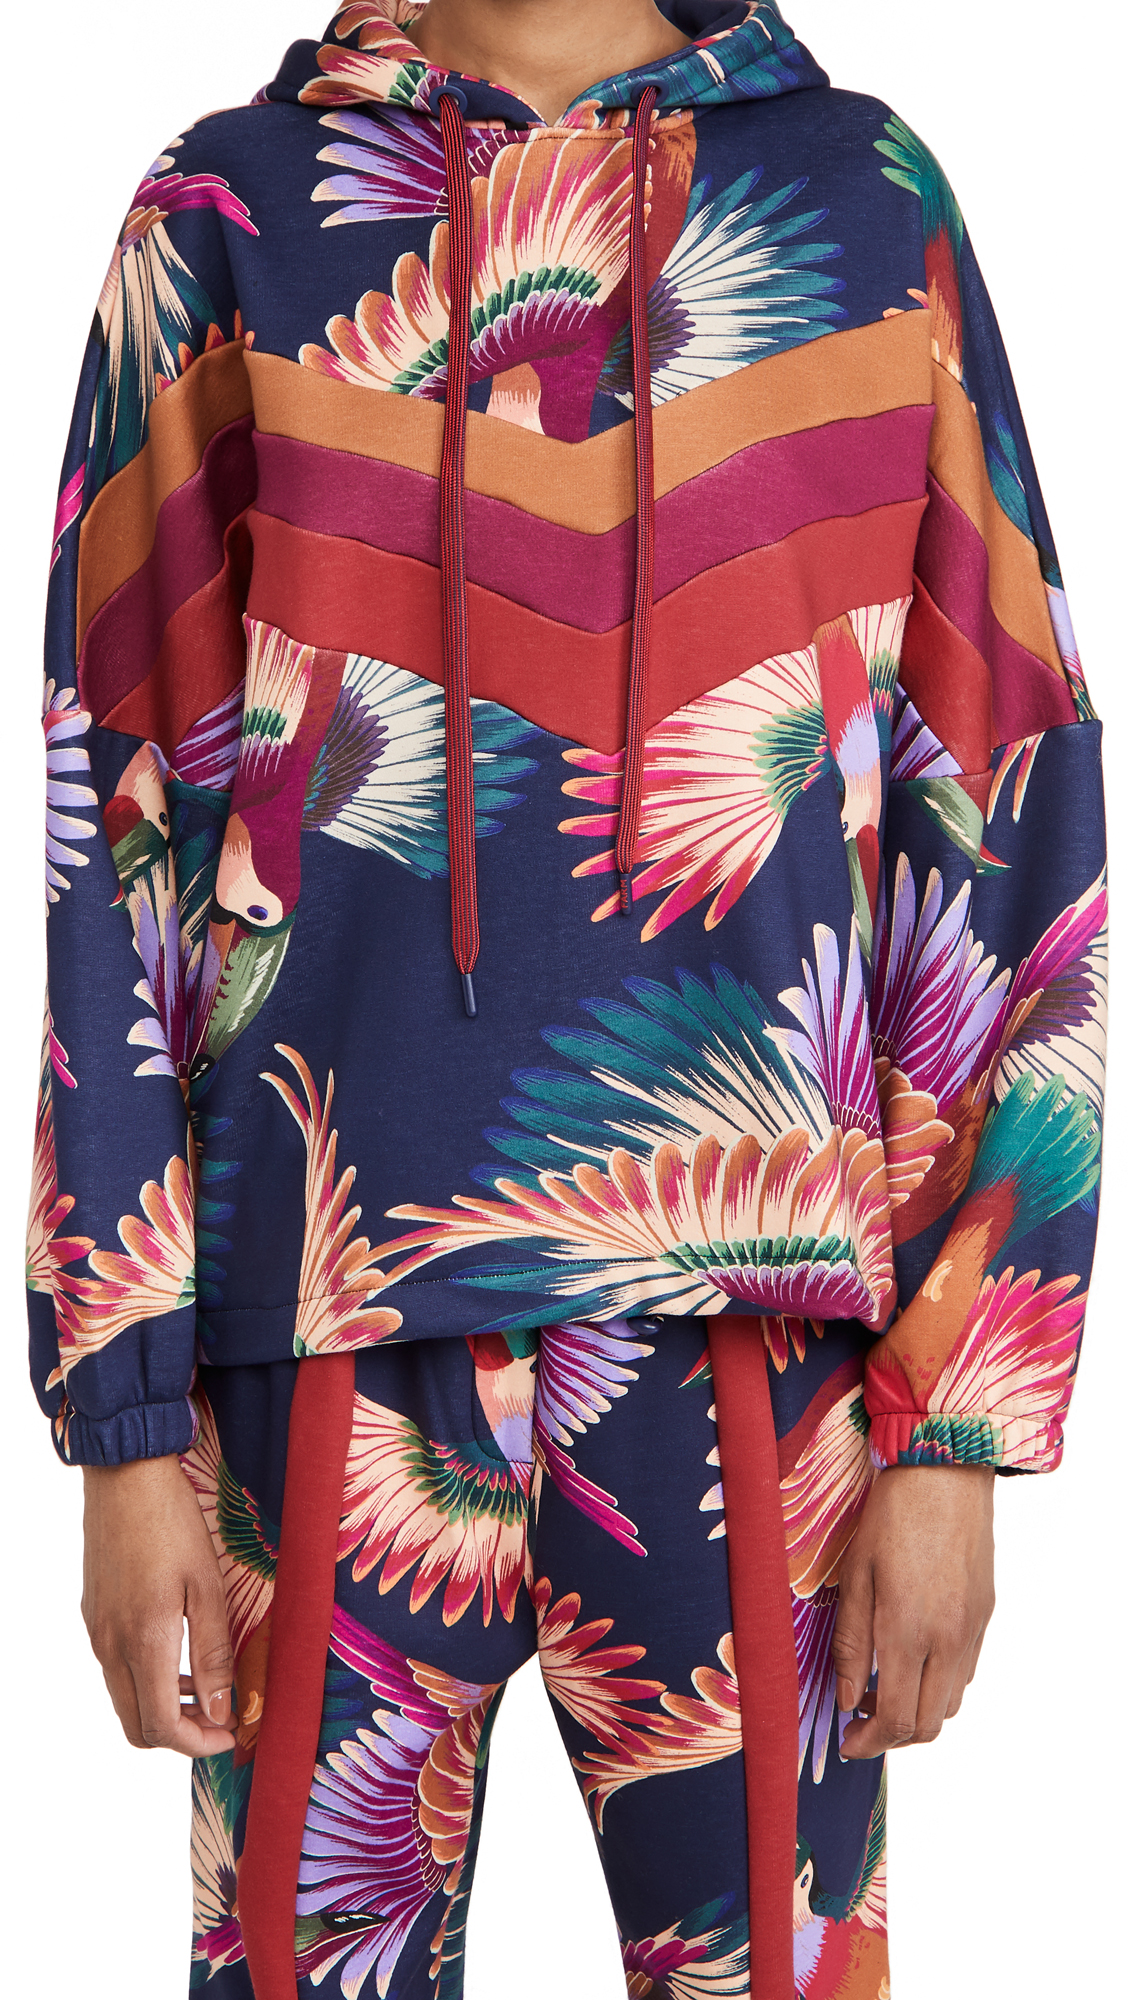 FARM Rio Colorful Toucans Sweatshirt